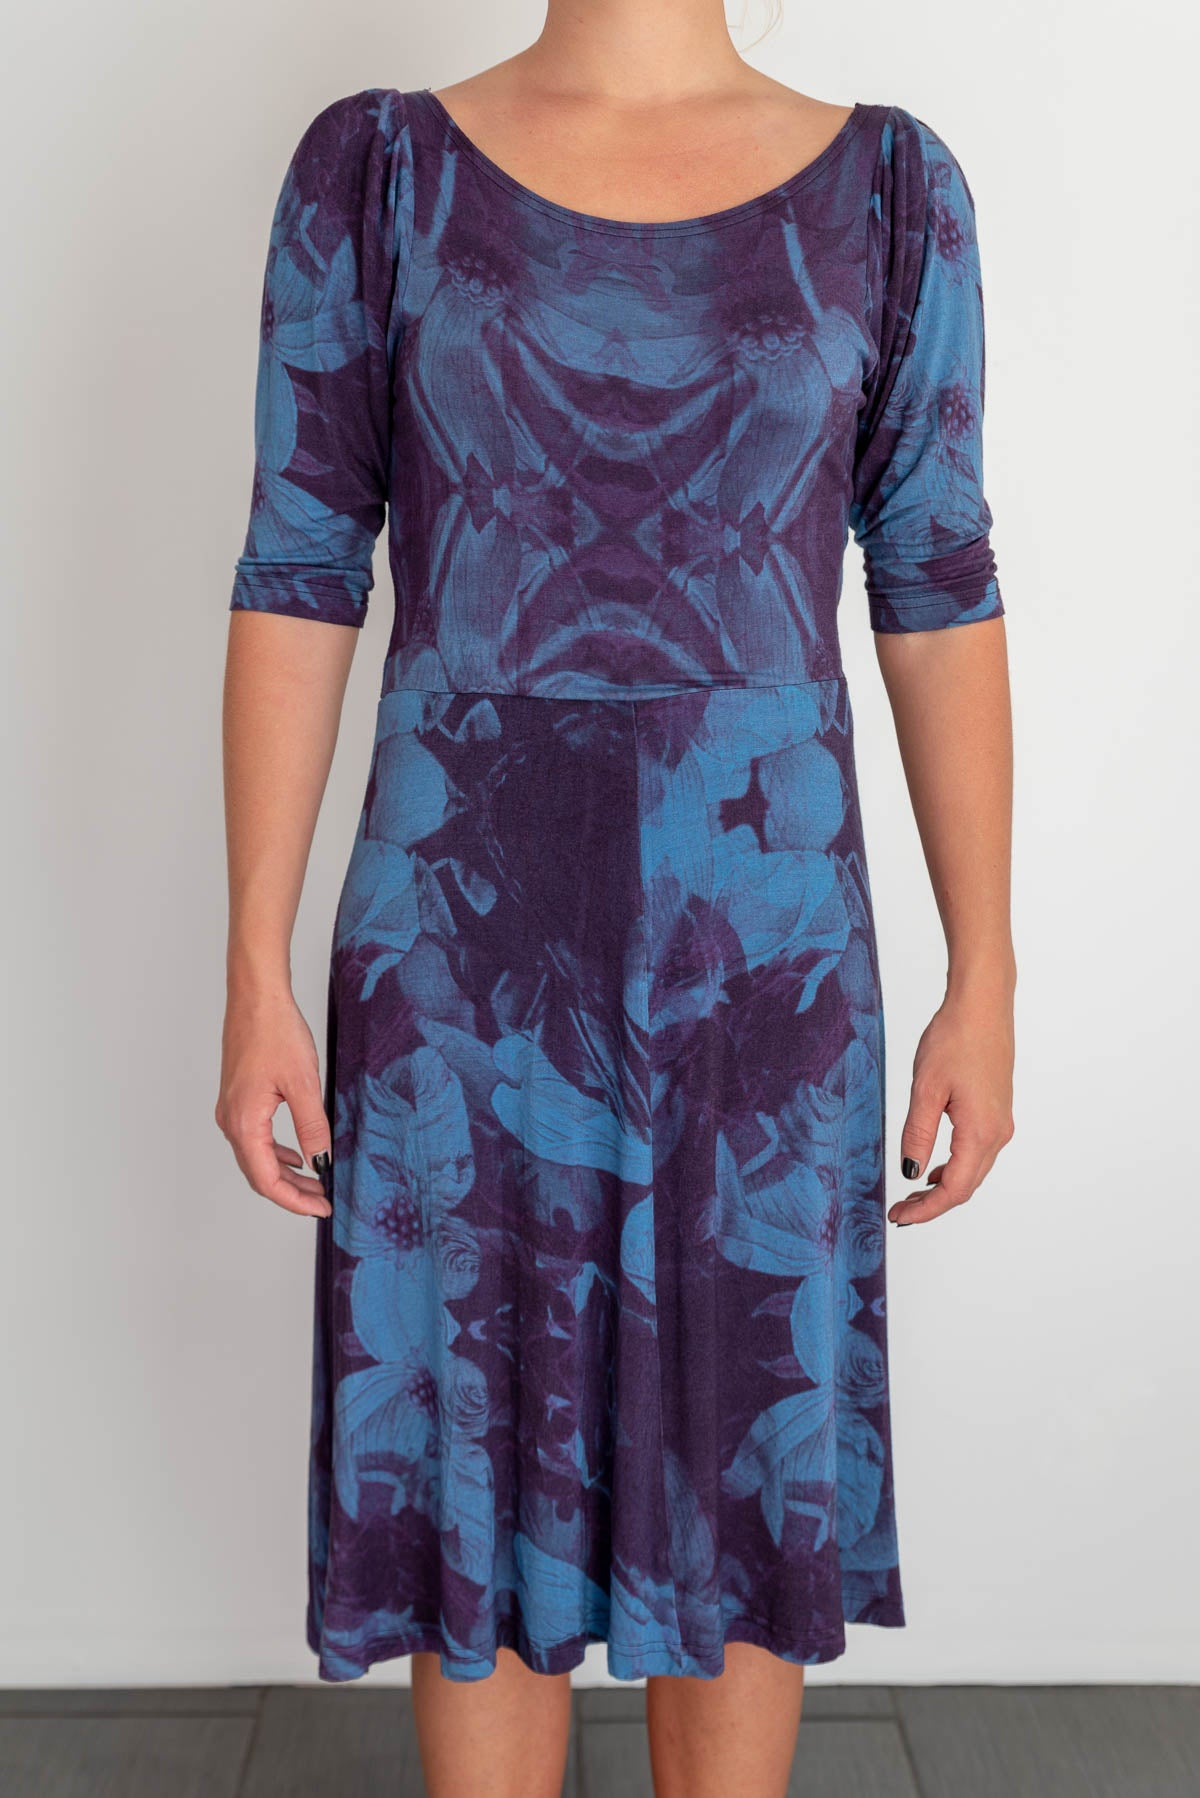 Vintage dress with blue & purple flowers by Finnish fashion brand Ivana Helsinki, size L